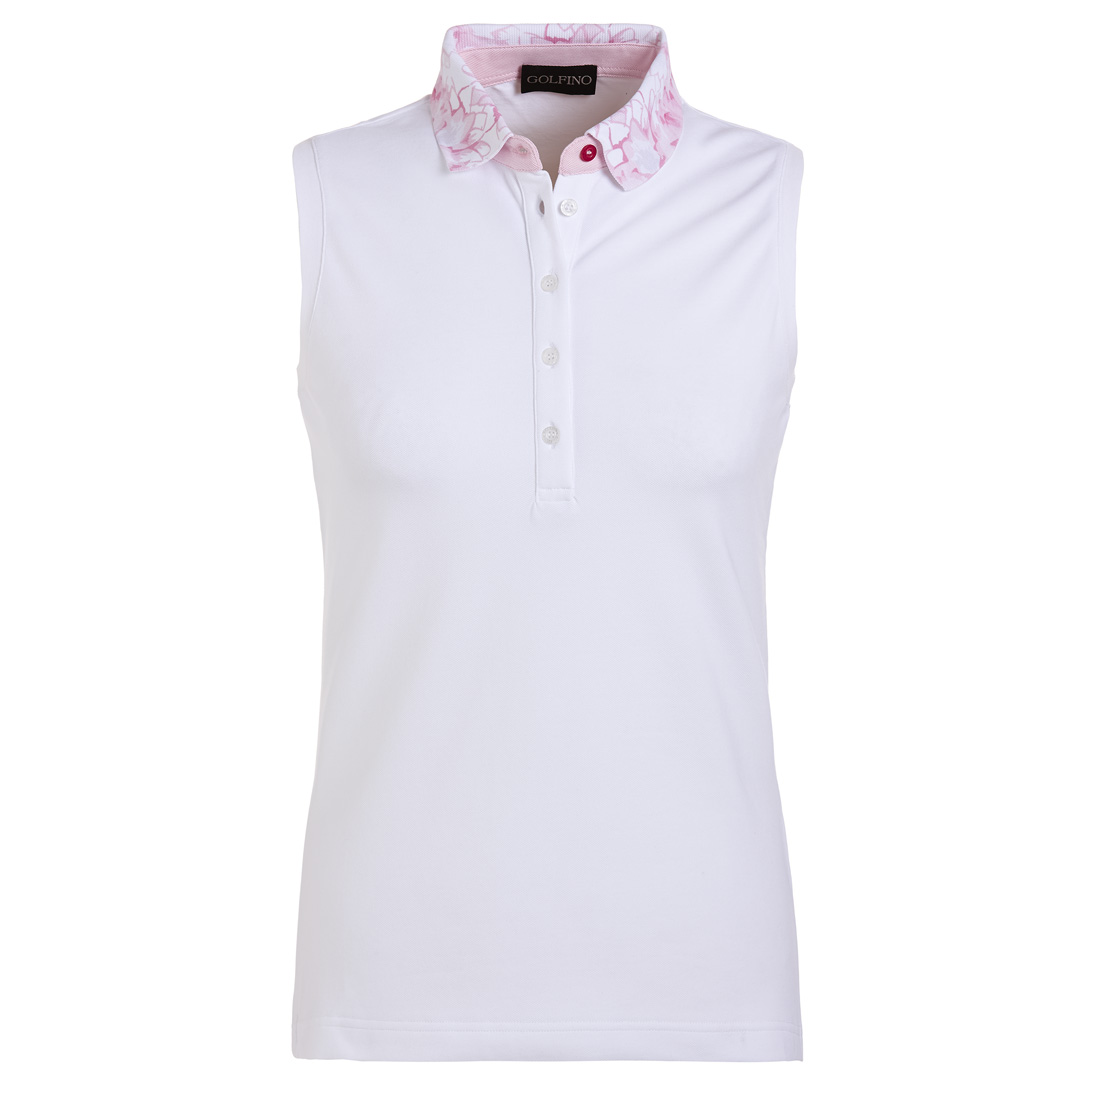 Ärmelloses Damen Golfshirt Sun Protect mit Blütenprint in Regular Fit